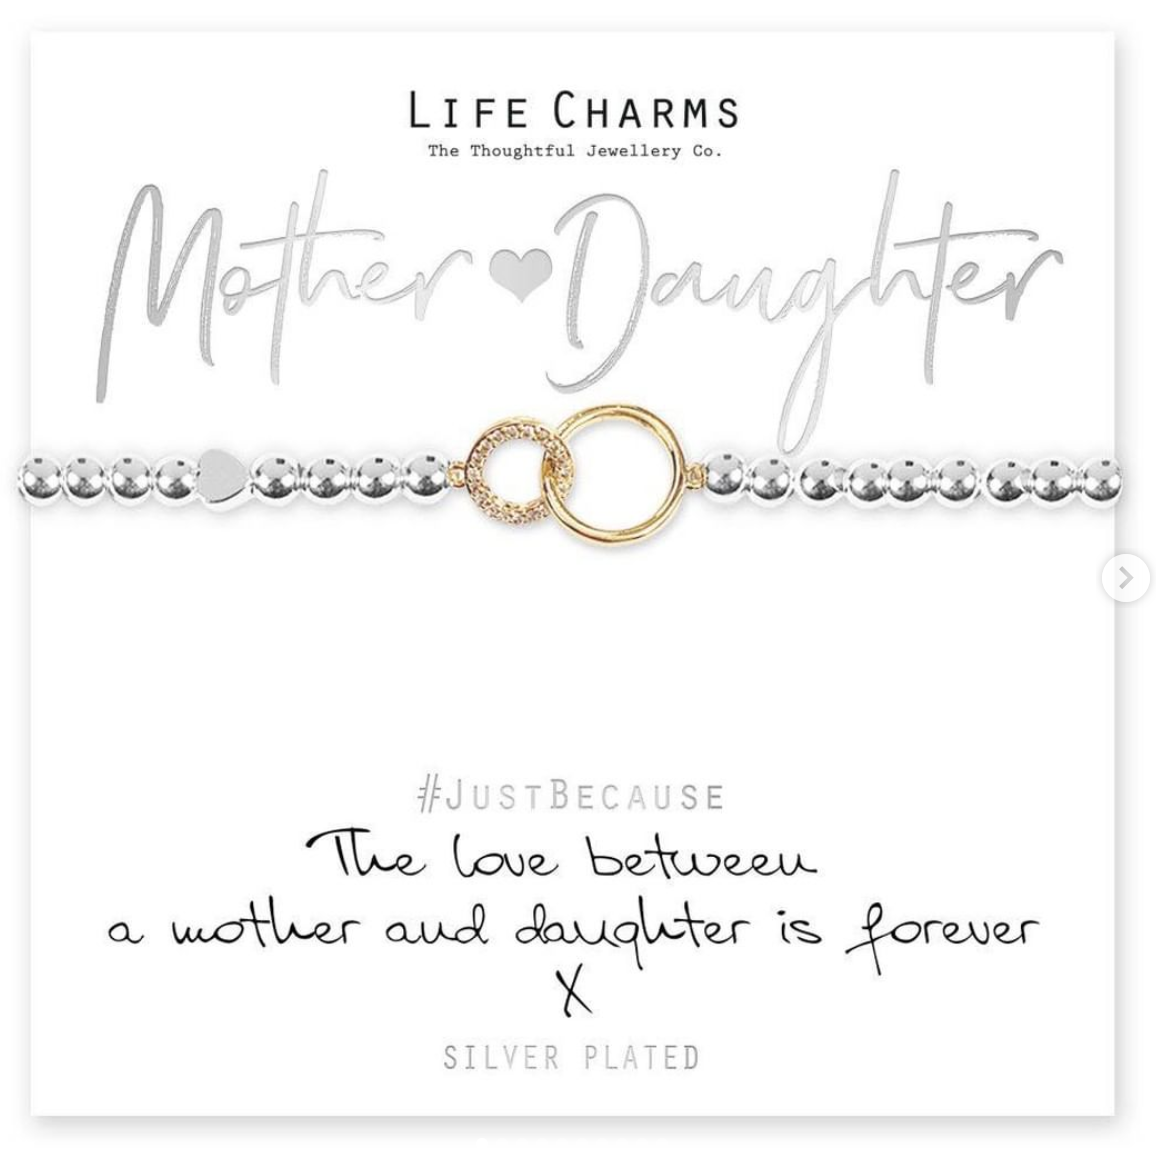 Above: A spot on sentiment gift from Life Charms that was promoted by Mooch.